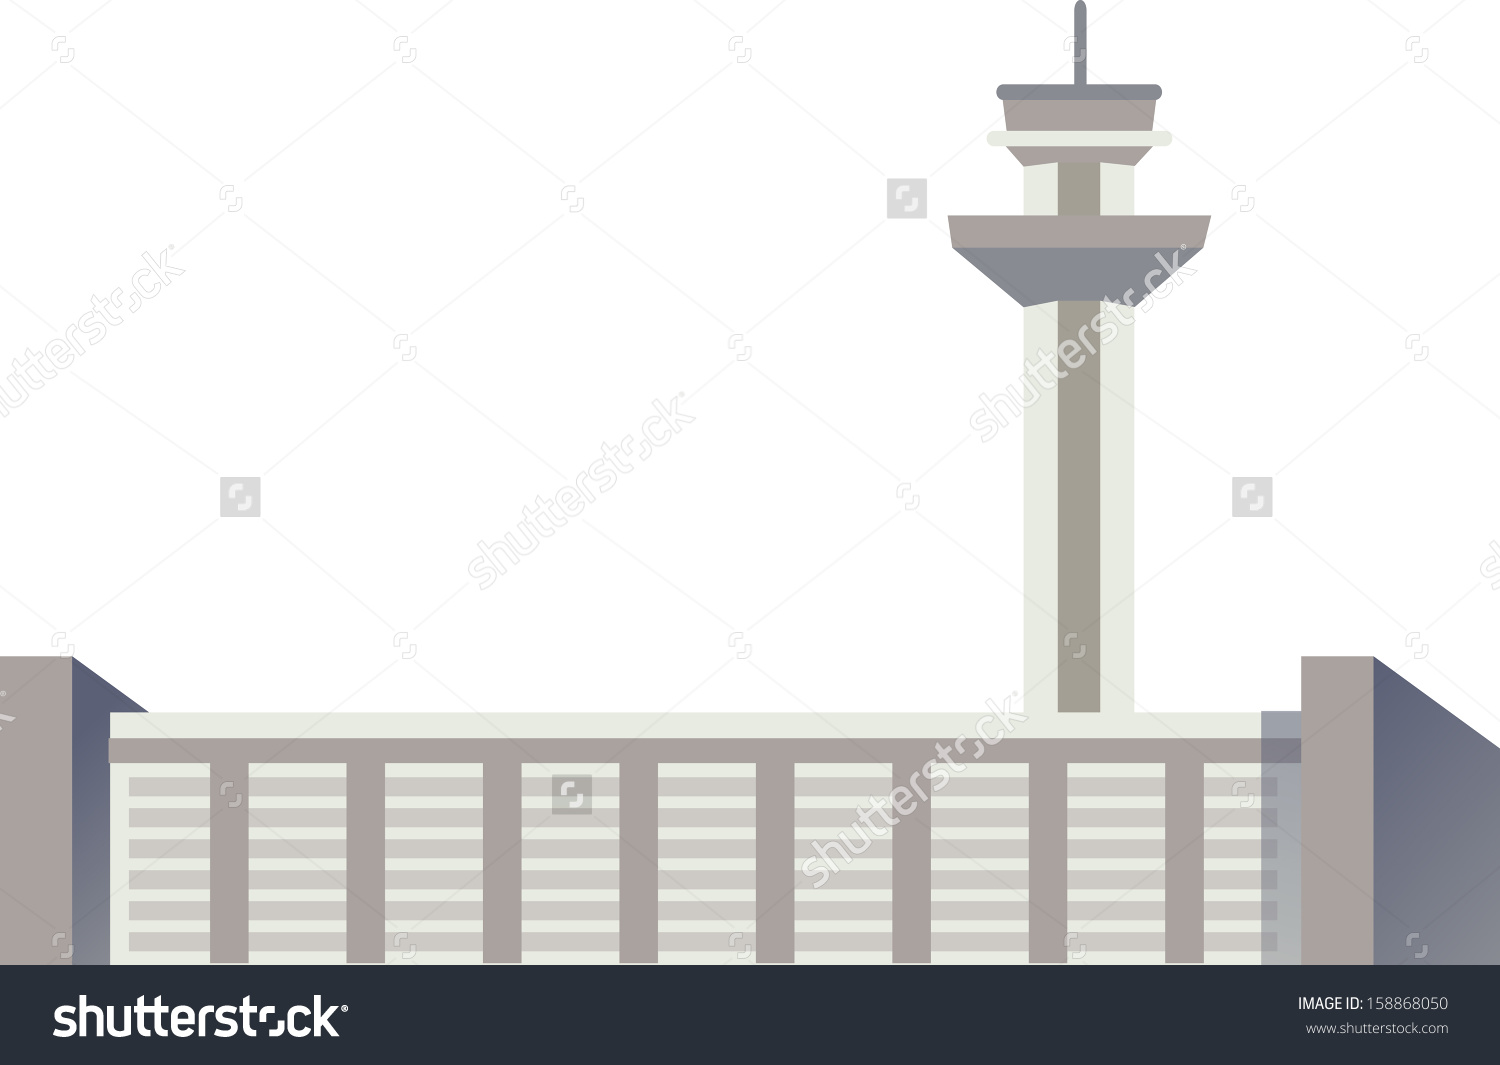 Vector Illustration On Air Traffic Control Stock Vector 158868050.